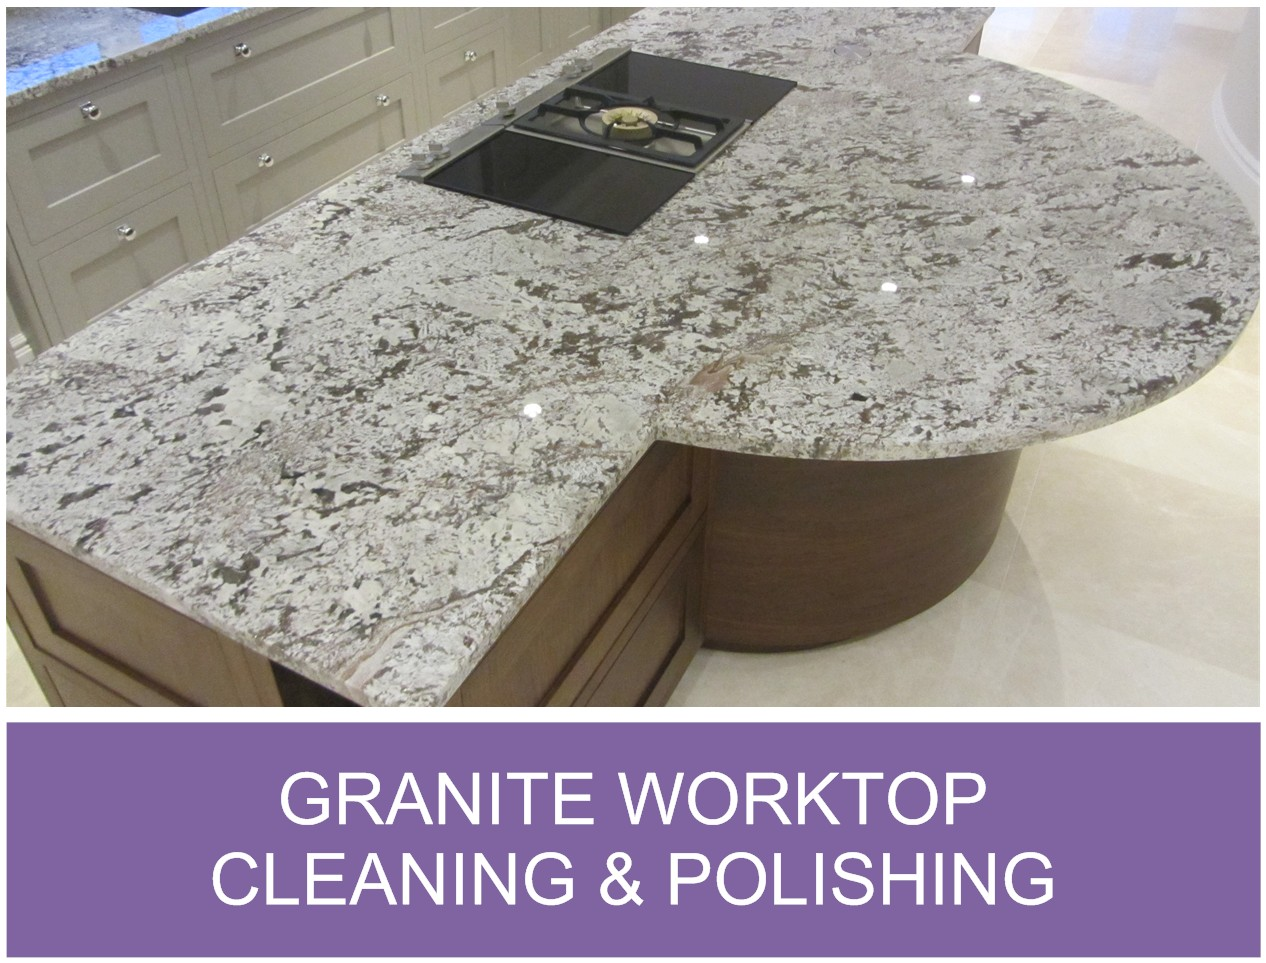 eye nothing worktops makes absolute cleaning your spectacular worktop with catching restoration beautiful an home and of countertops deep top countertop look stone sealing more floors care polishing work than are shining new sparkle granite its